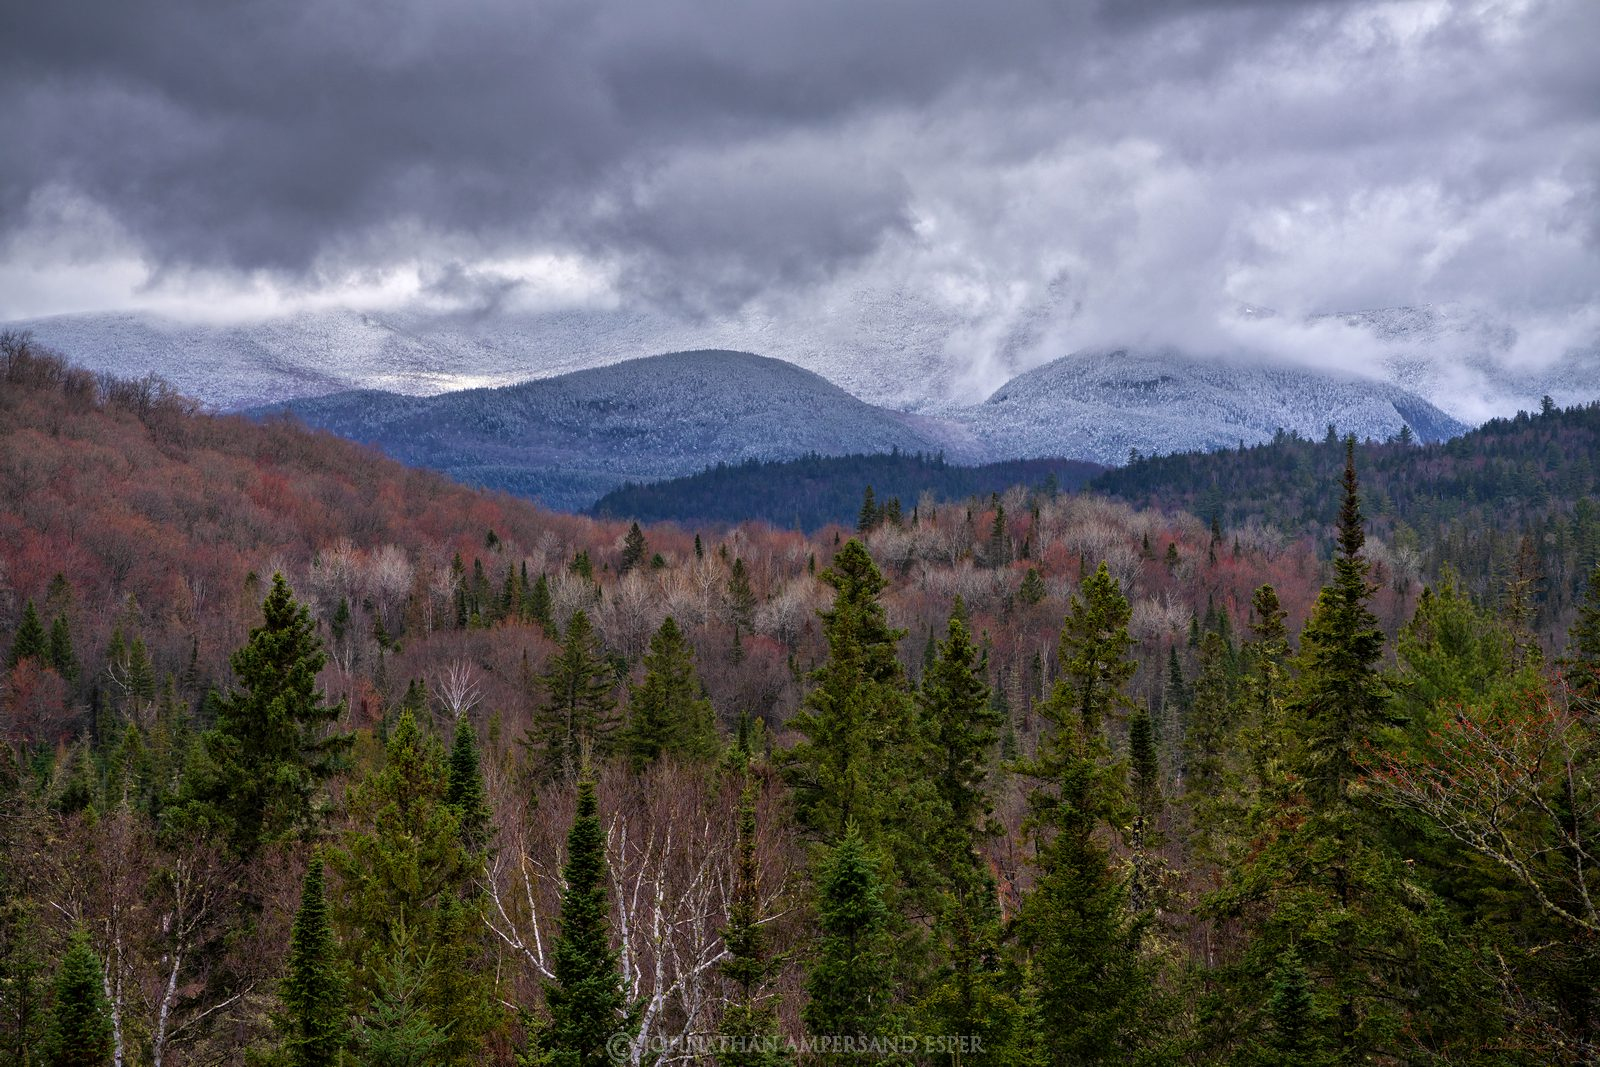 Whiteface Mt,Whiteface,River Road,River Rd,River Road Lodge,spring,maples,budding,spring snow,snow dusting,red and white,April...